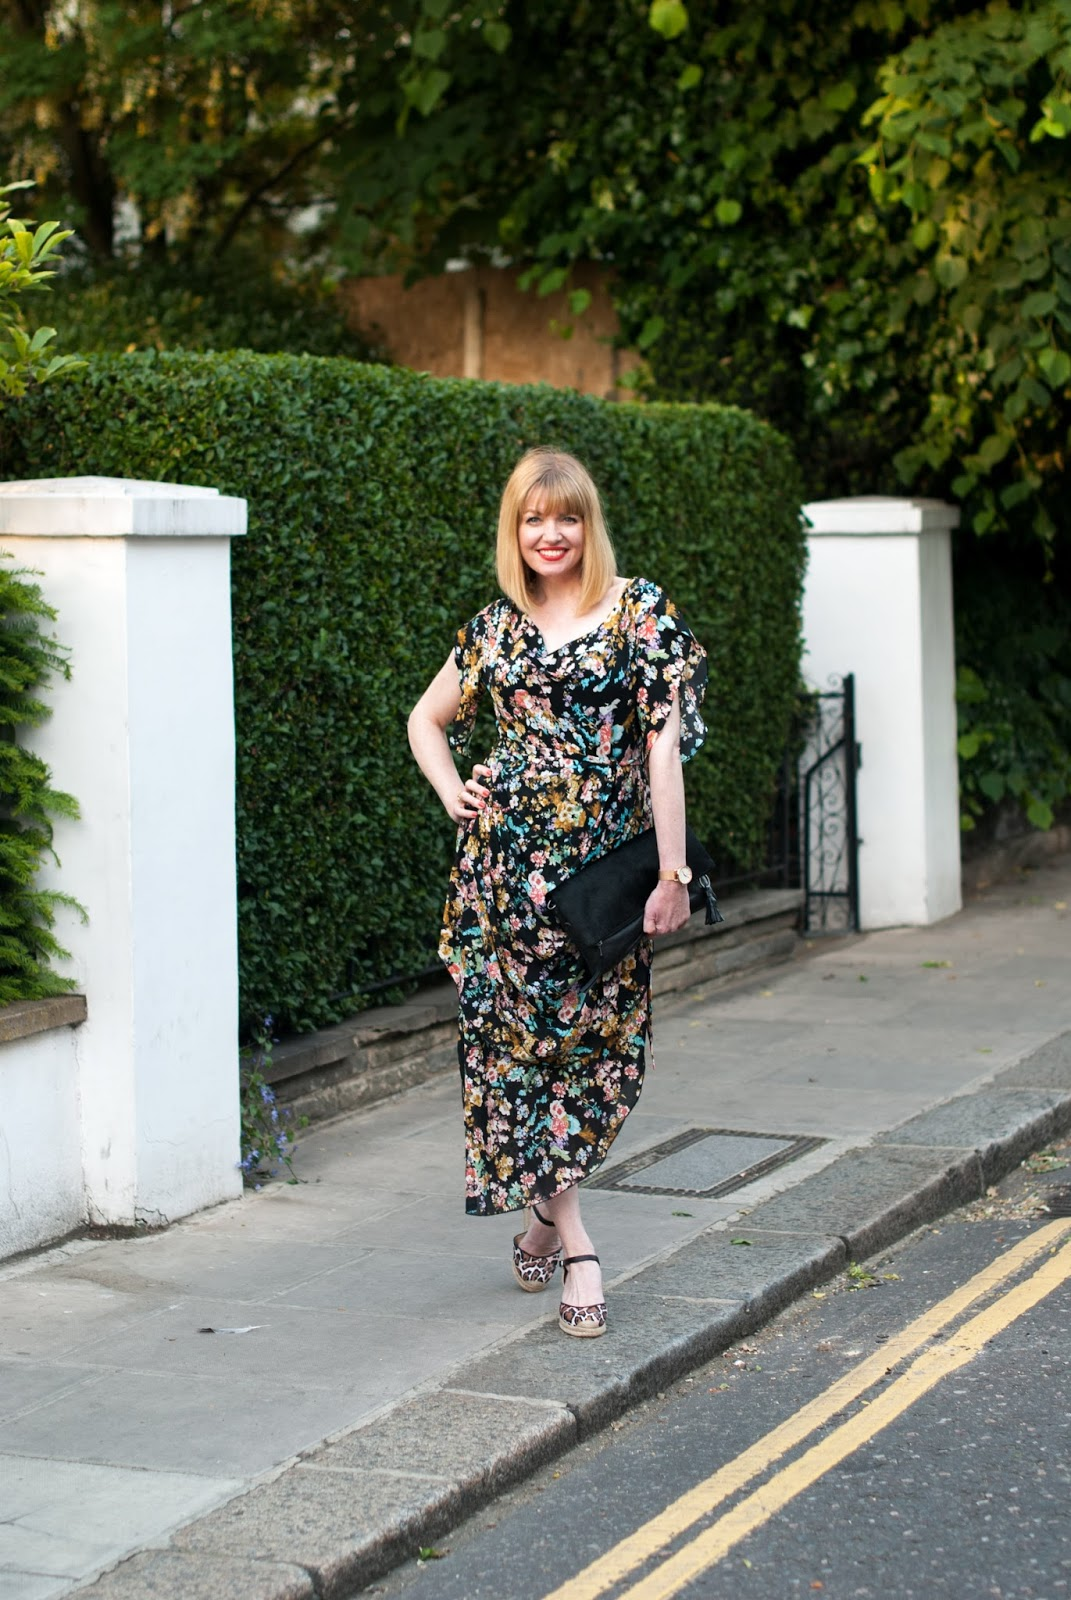 Floral draped vintage style dress with leopard print espadrilles, over 40 style